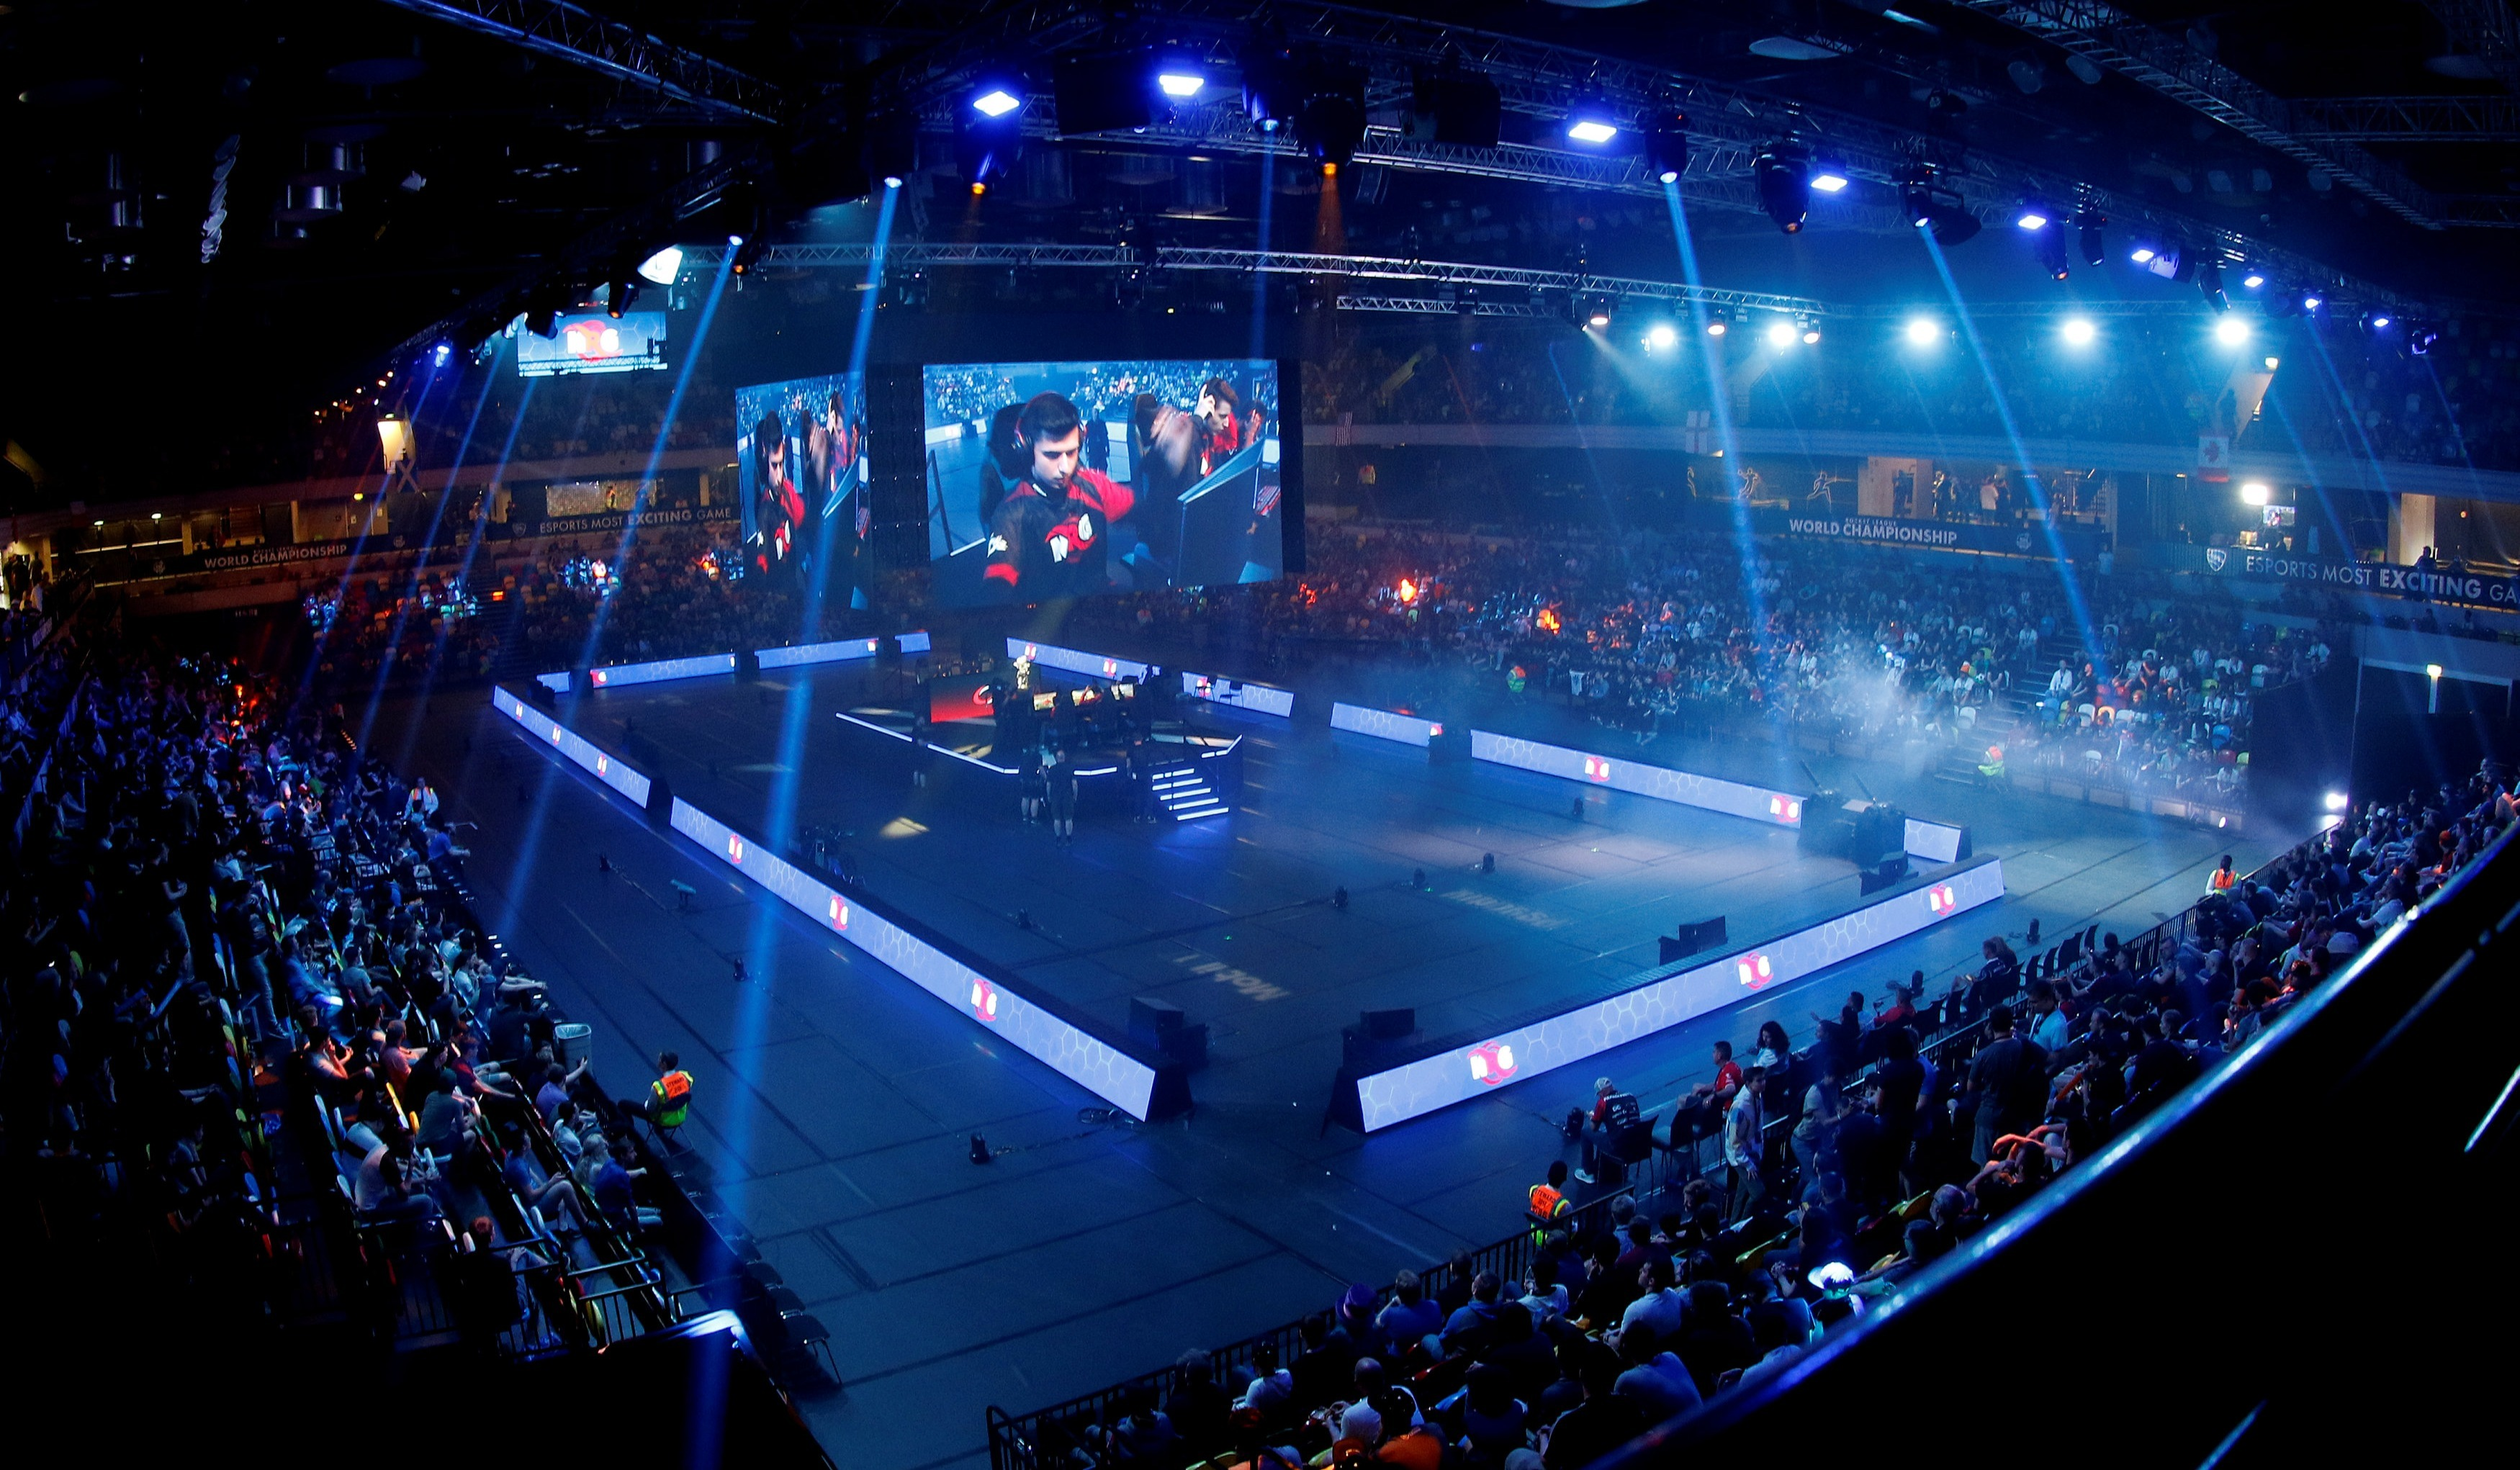 2020 Infront trends to watch - Esports